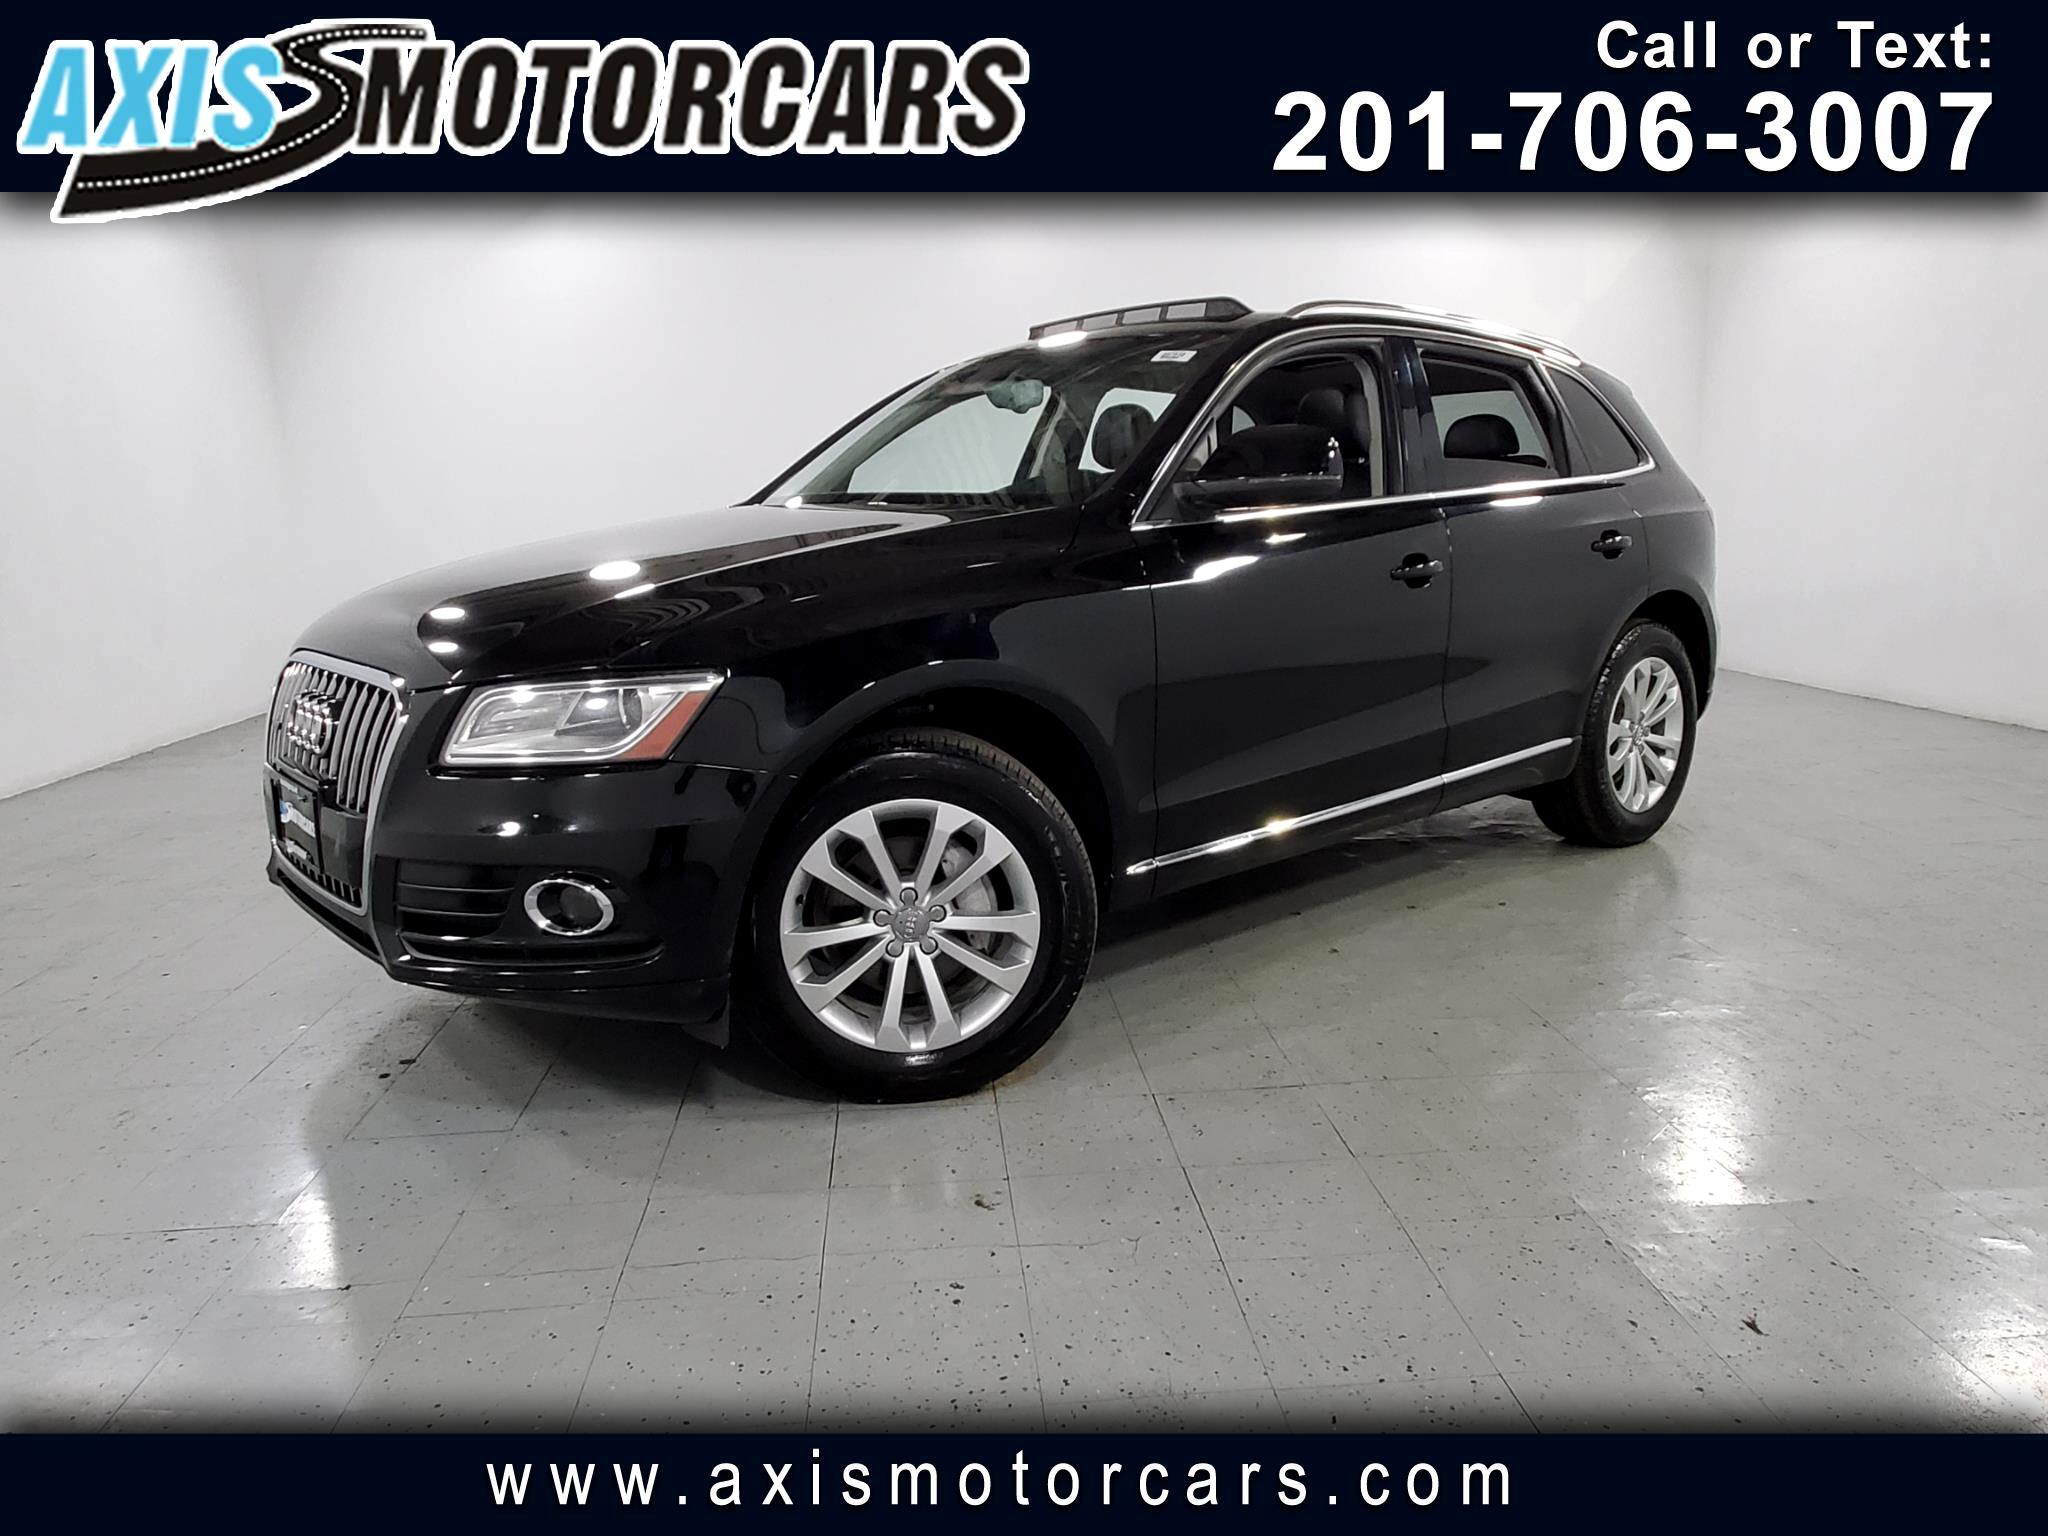 2013 Audi Q5 w/Navigation Leather Panoramic Roof